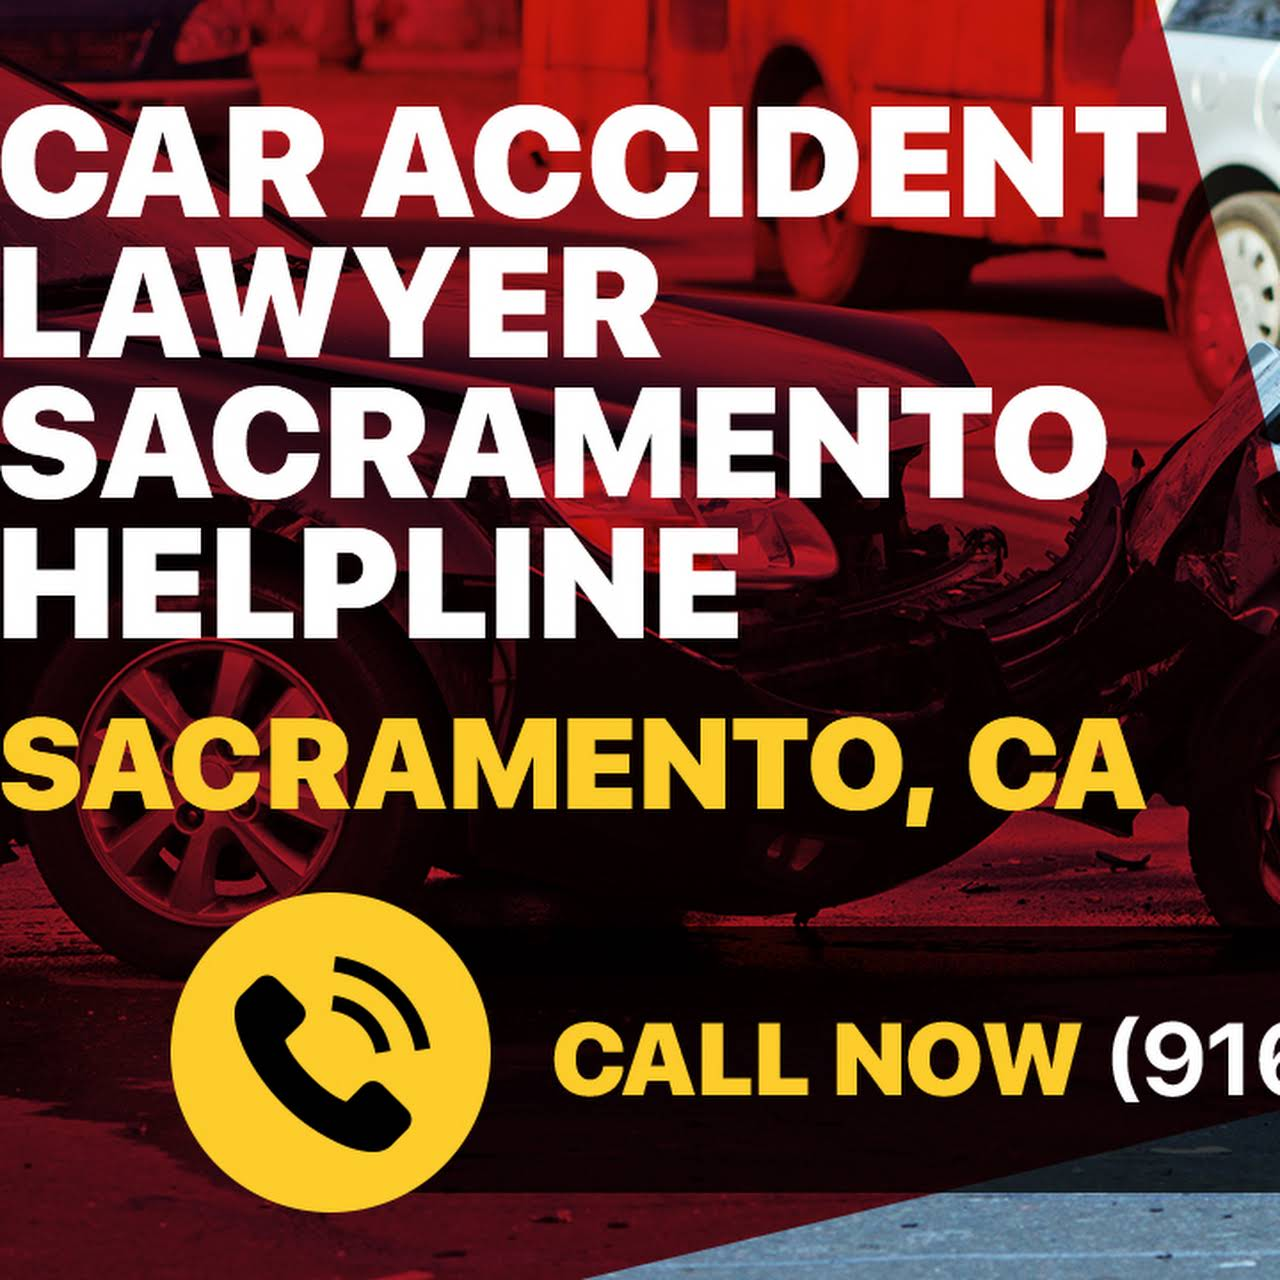 Sacramento CA Lawyers- Personal Injury, Car Accident, Work Comp